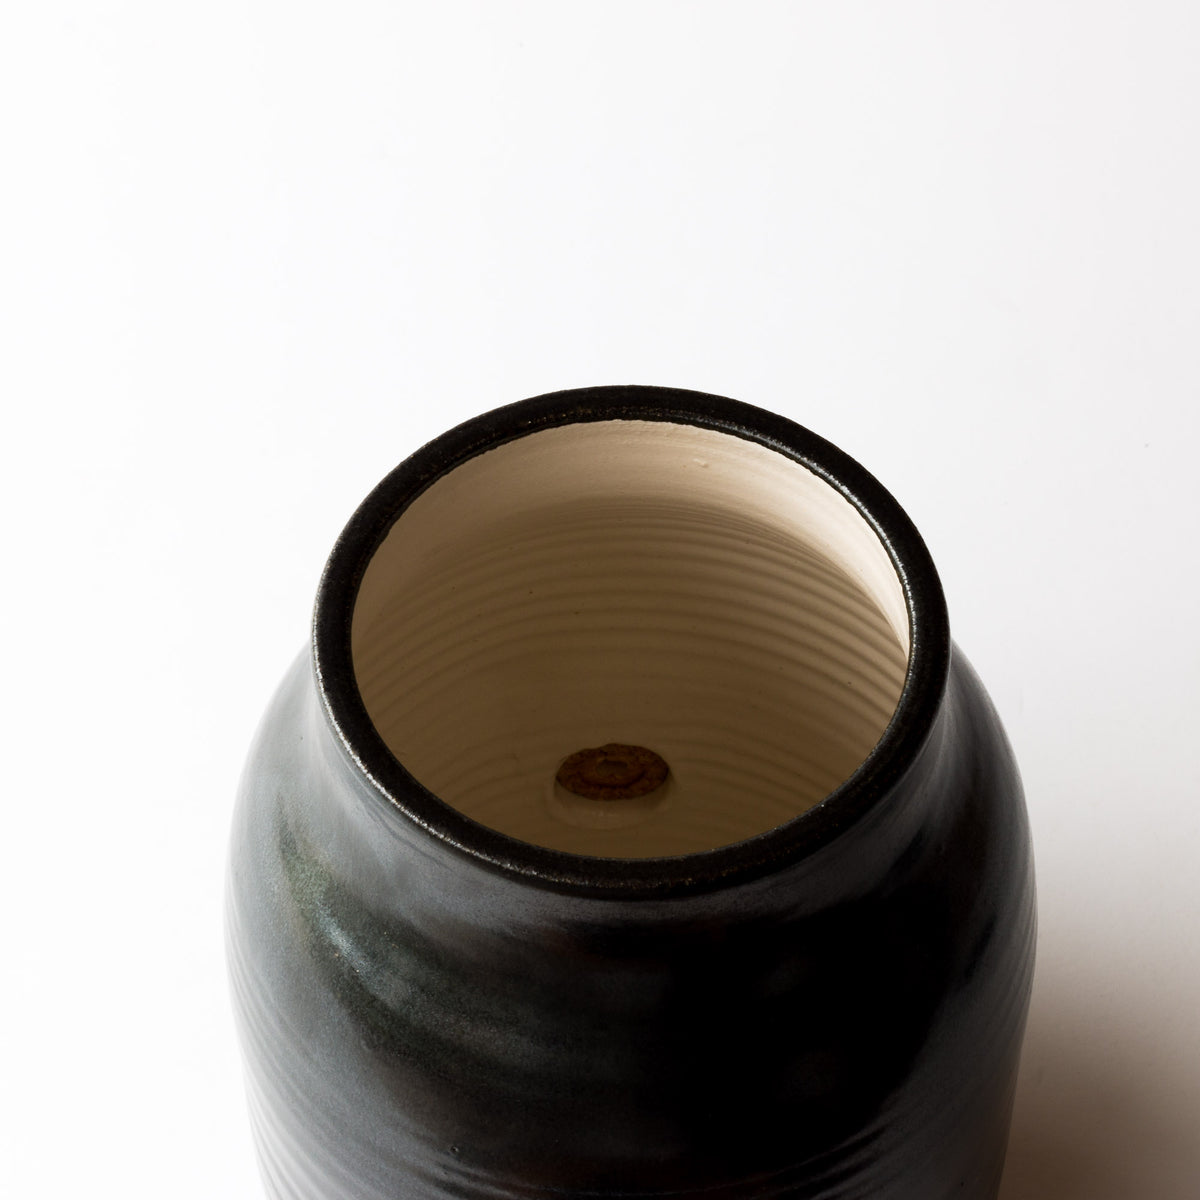 Interior of Handmade Kombucha Jar / Vinegar Pot - 3 liters - In Black Ceramic - Made in Canada - Sold by Chic & Basta